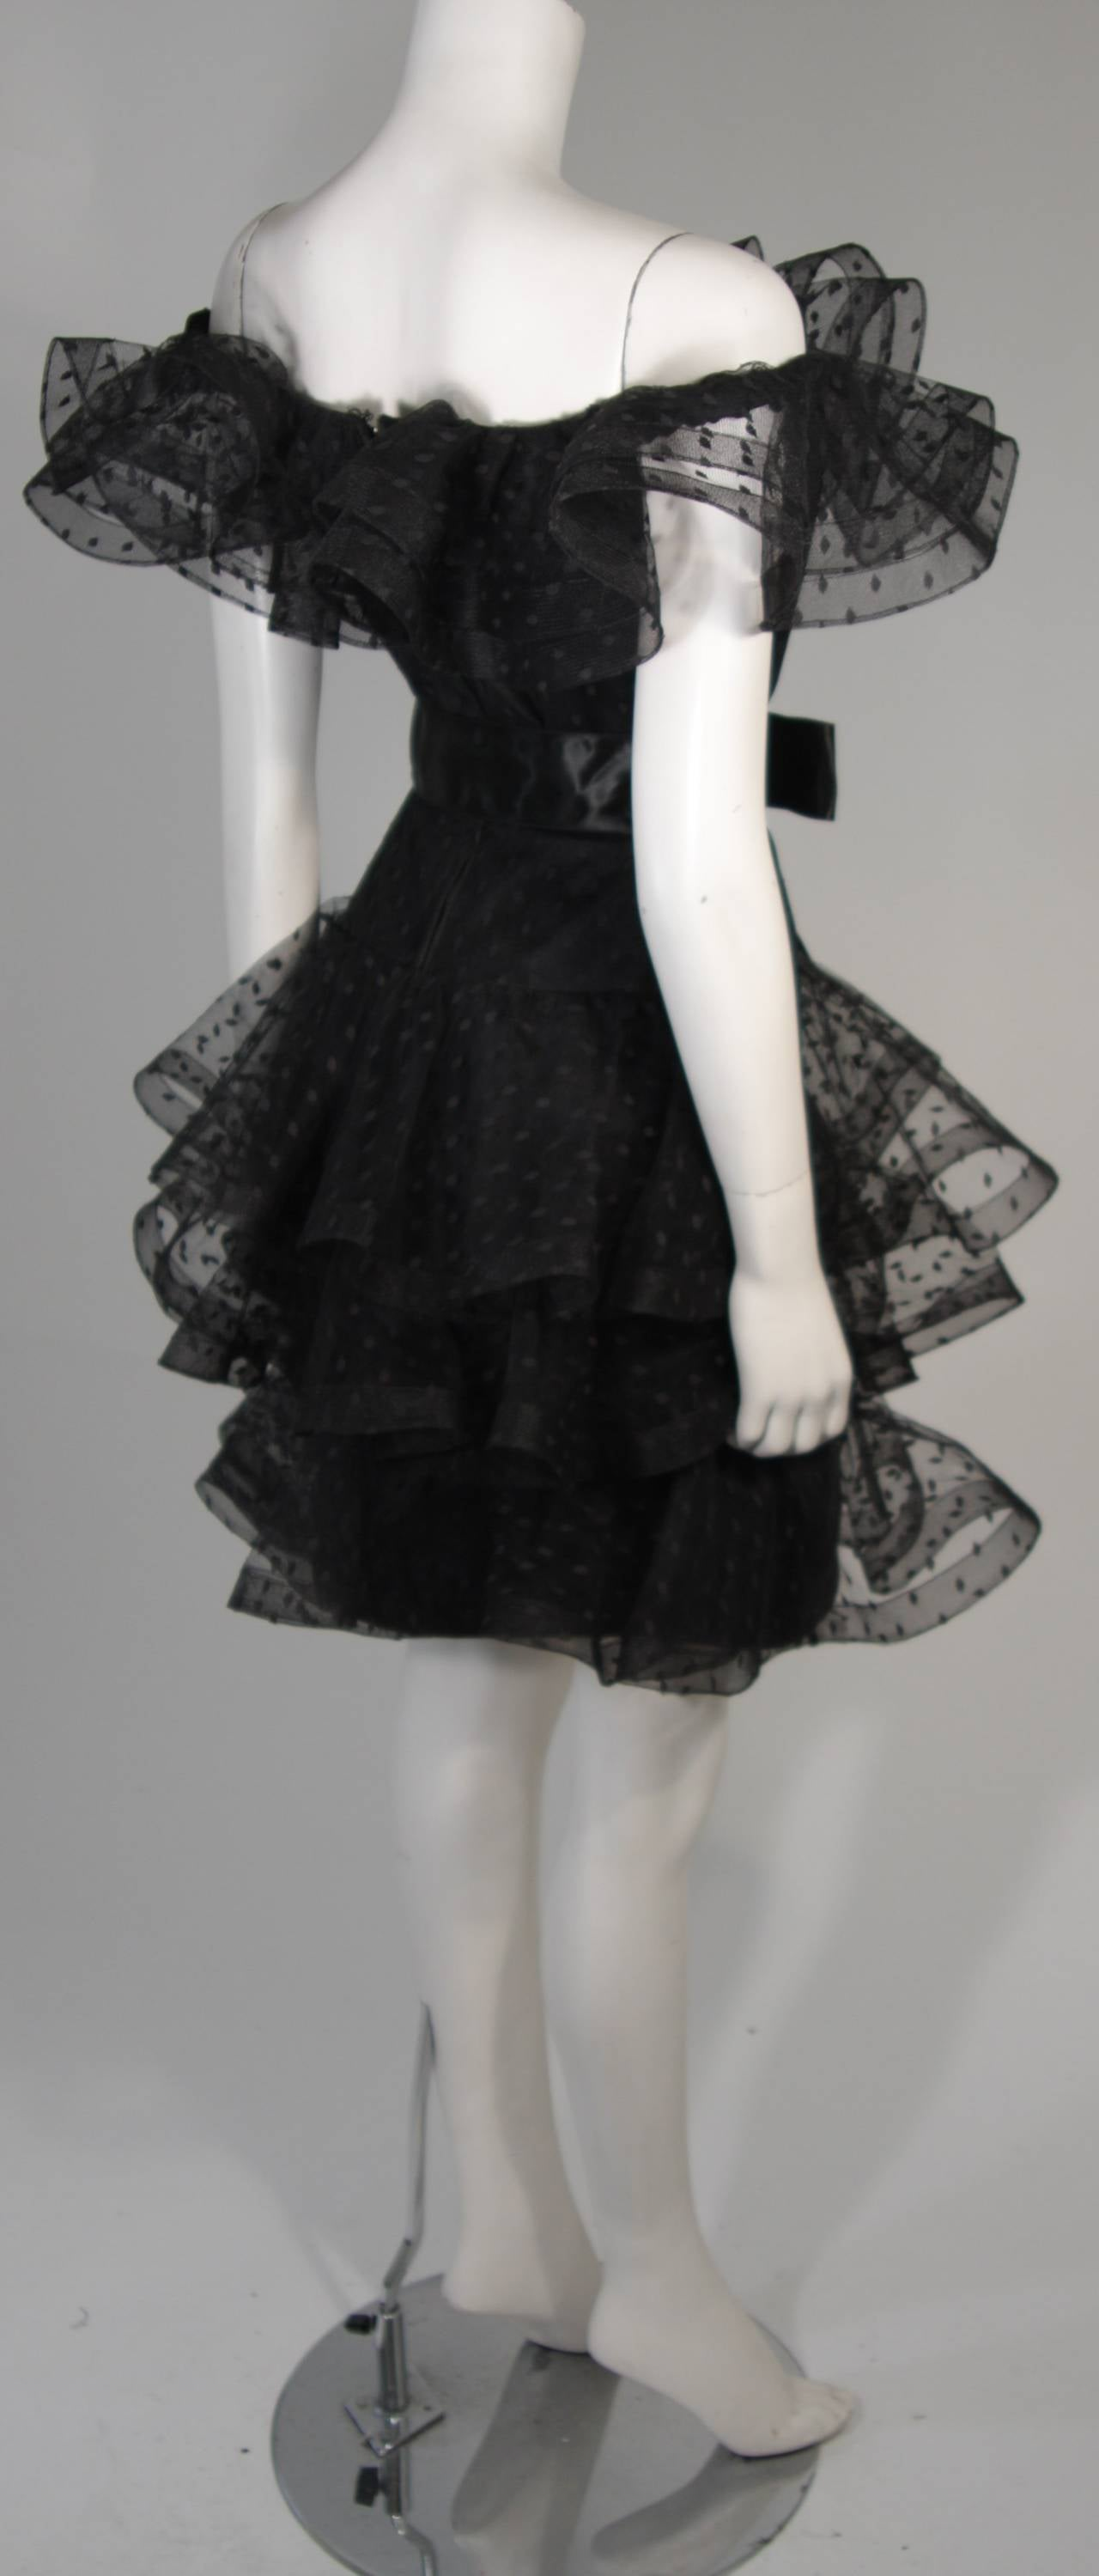 Victor Costa Black Cocktail Dress with Ruffled Horsehair Hemlines Size 2 For Sale 4